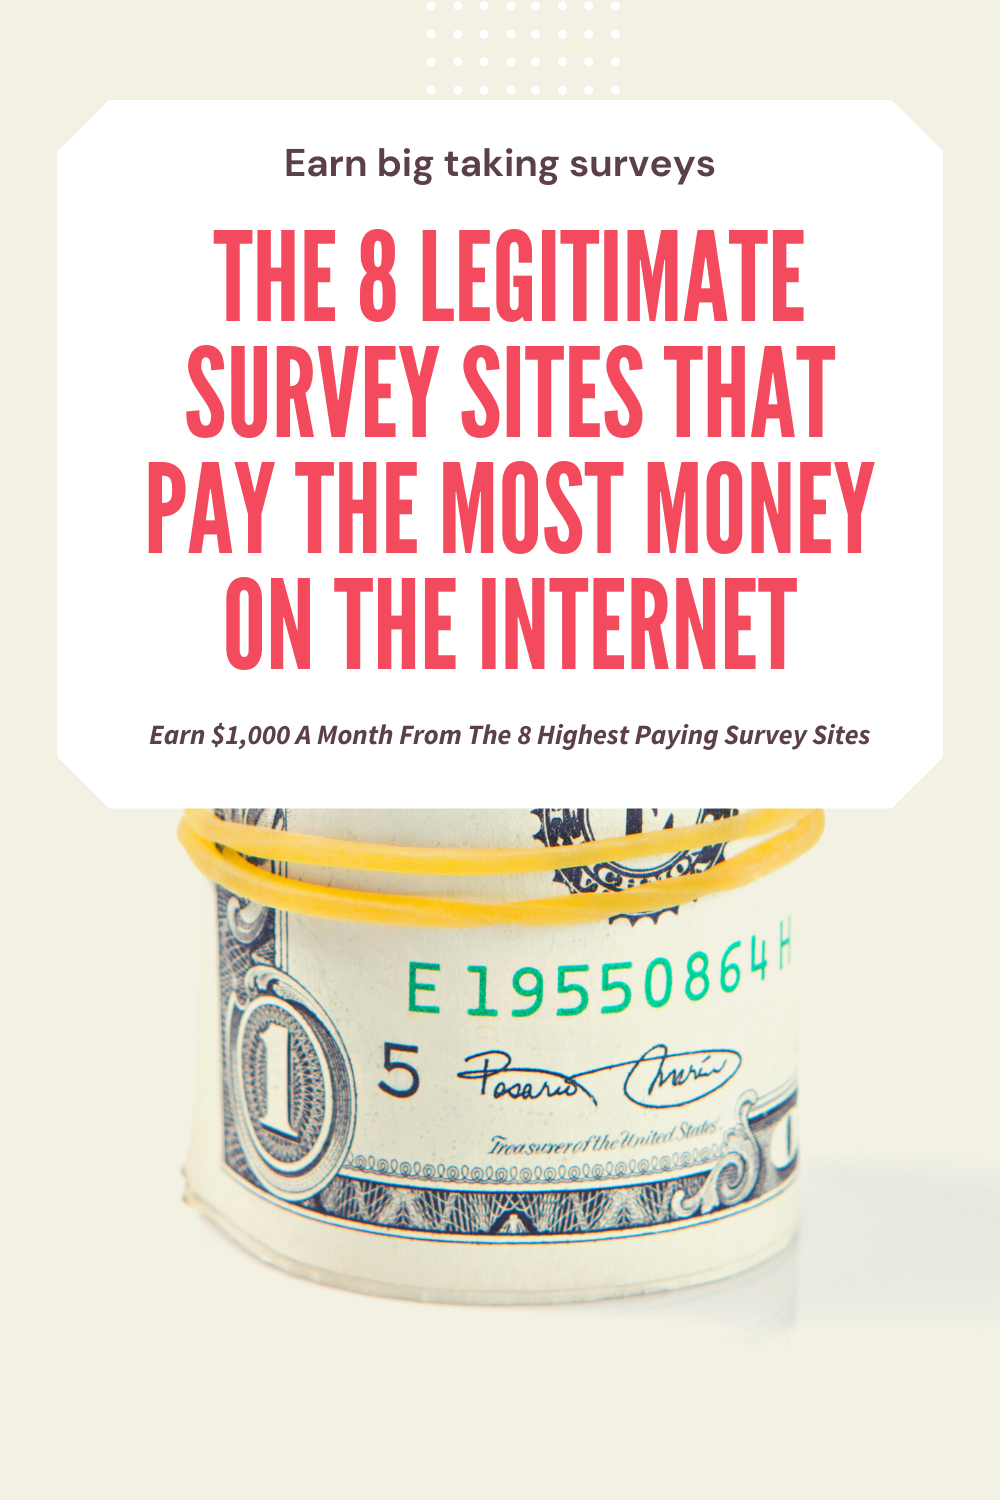 Legitimate survey sites that pay the most money on the internet